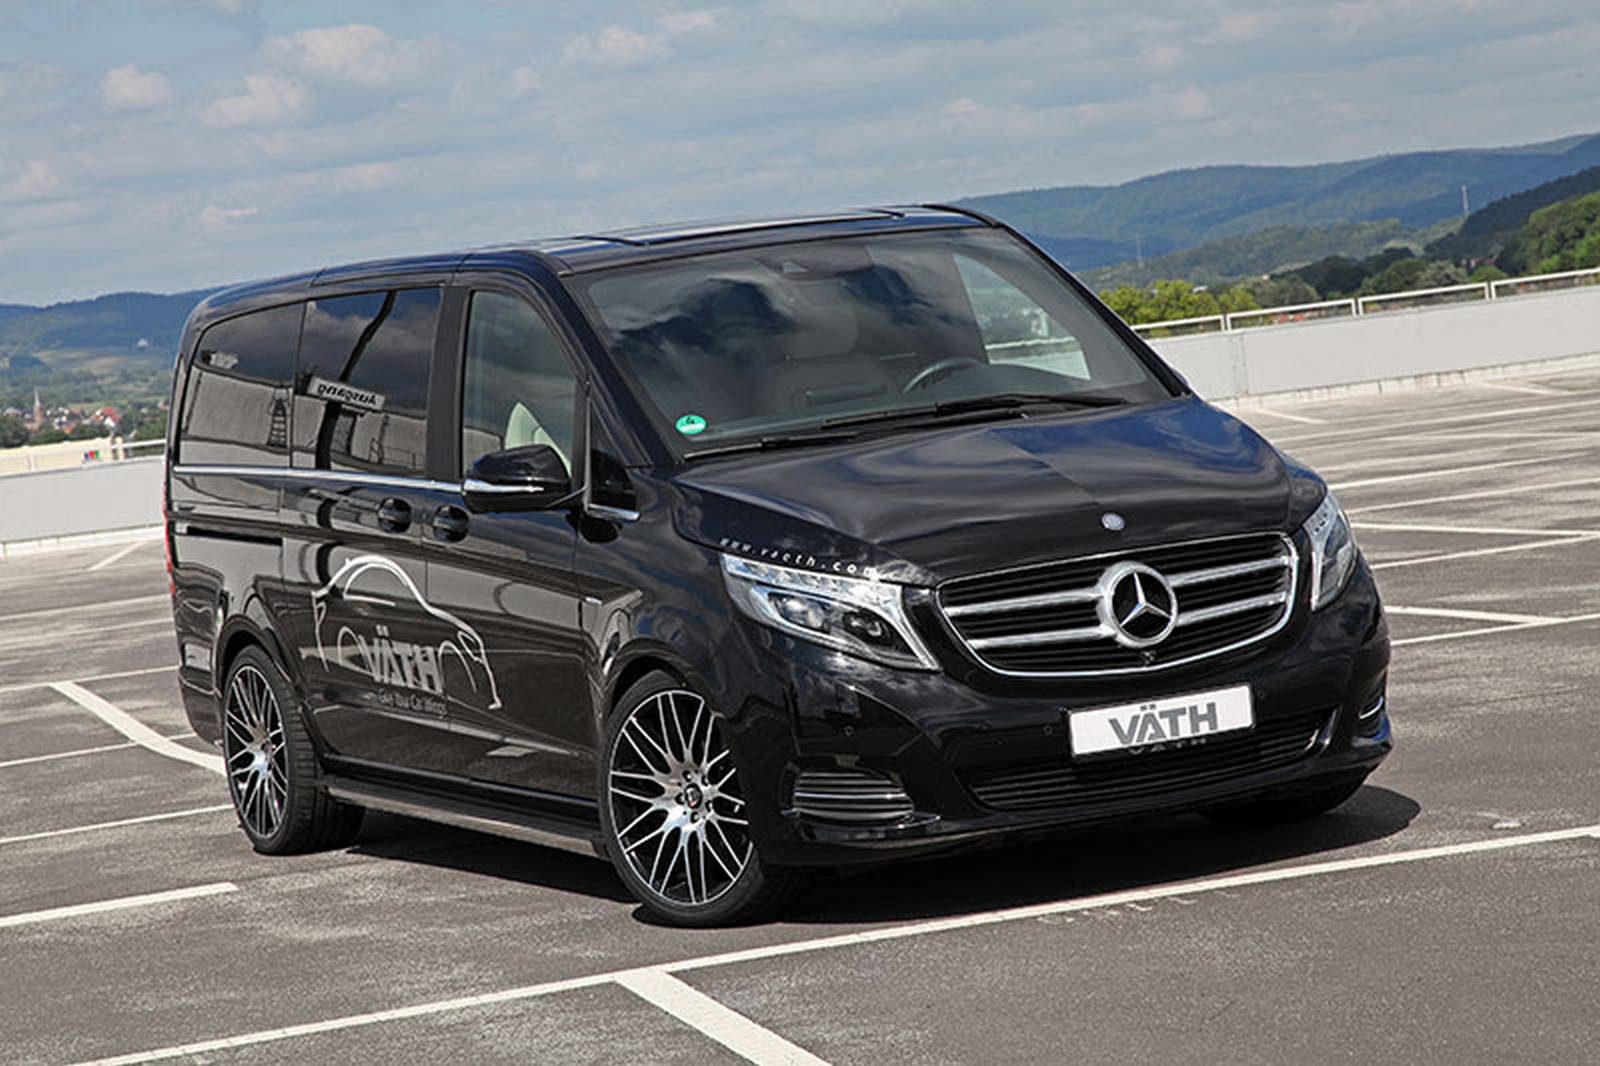 official vath mercedes benz v class gtspirit